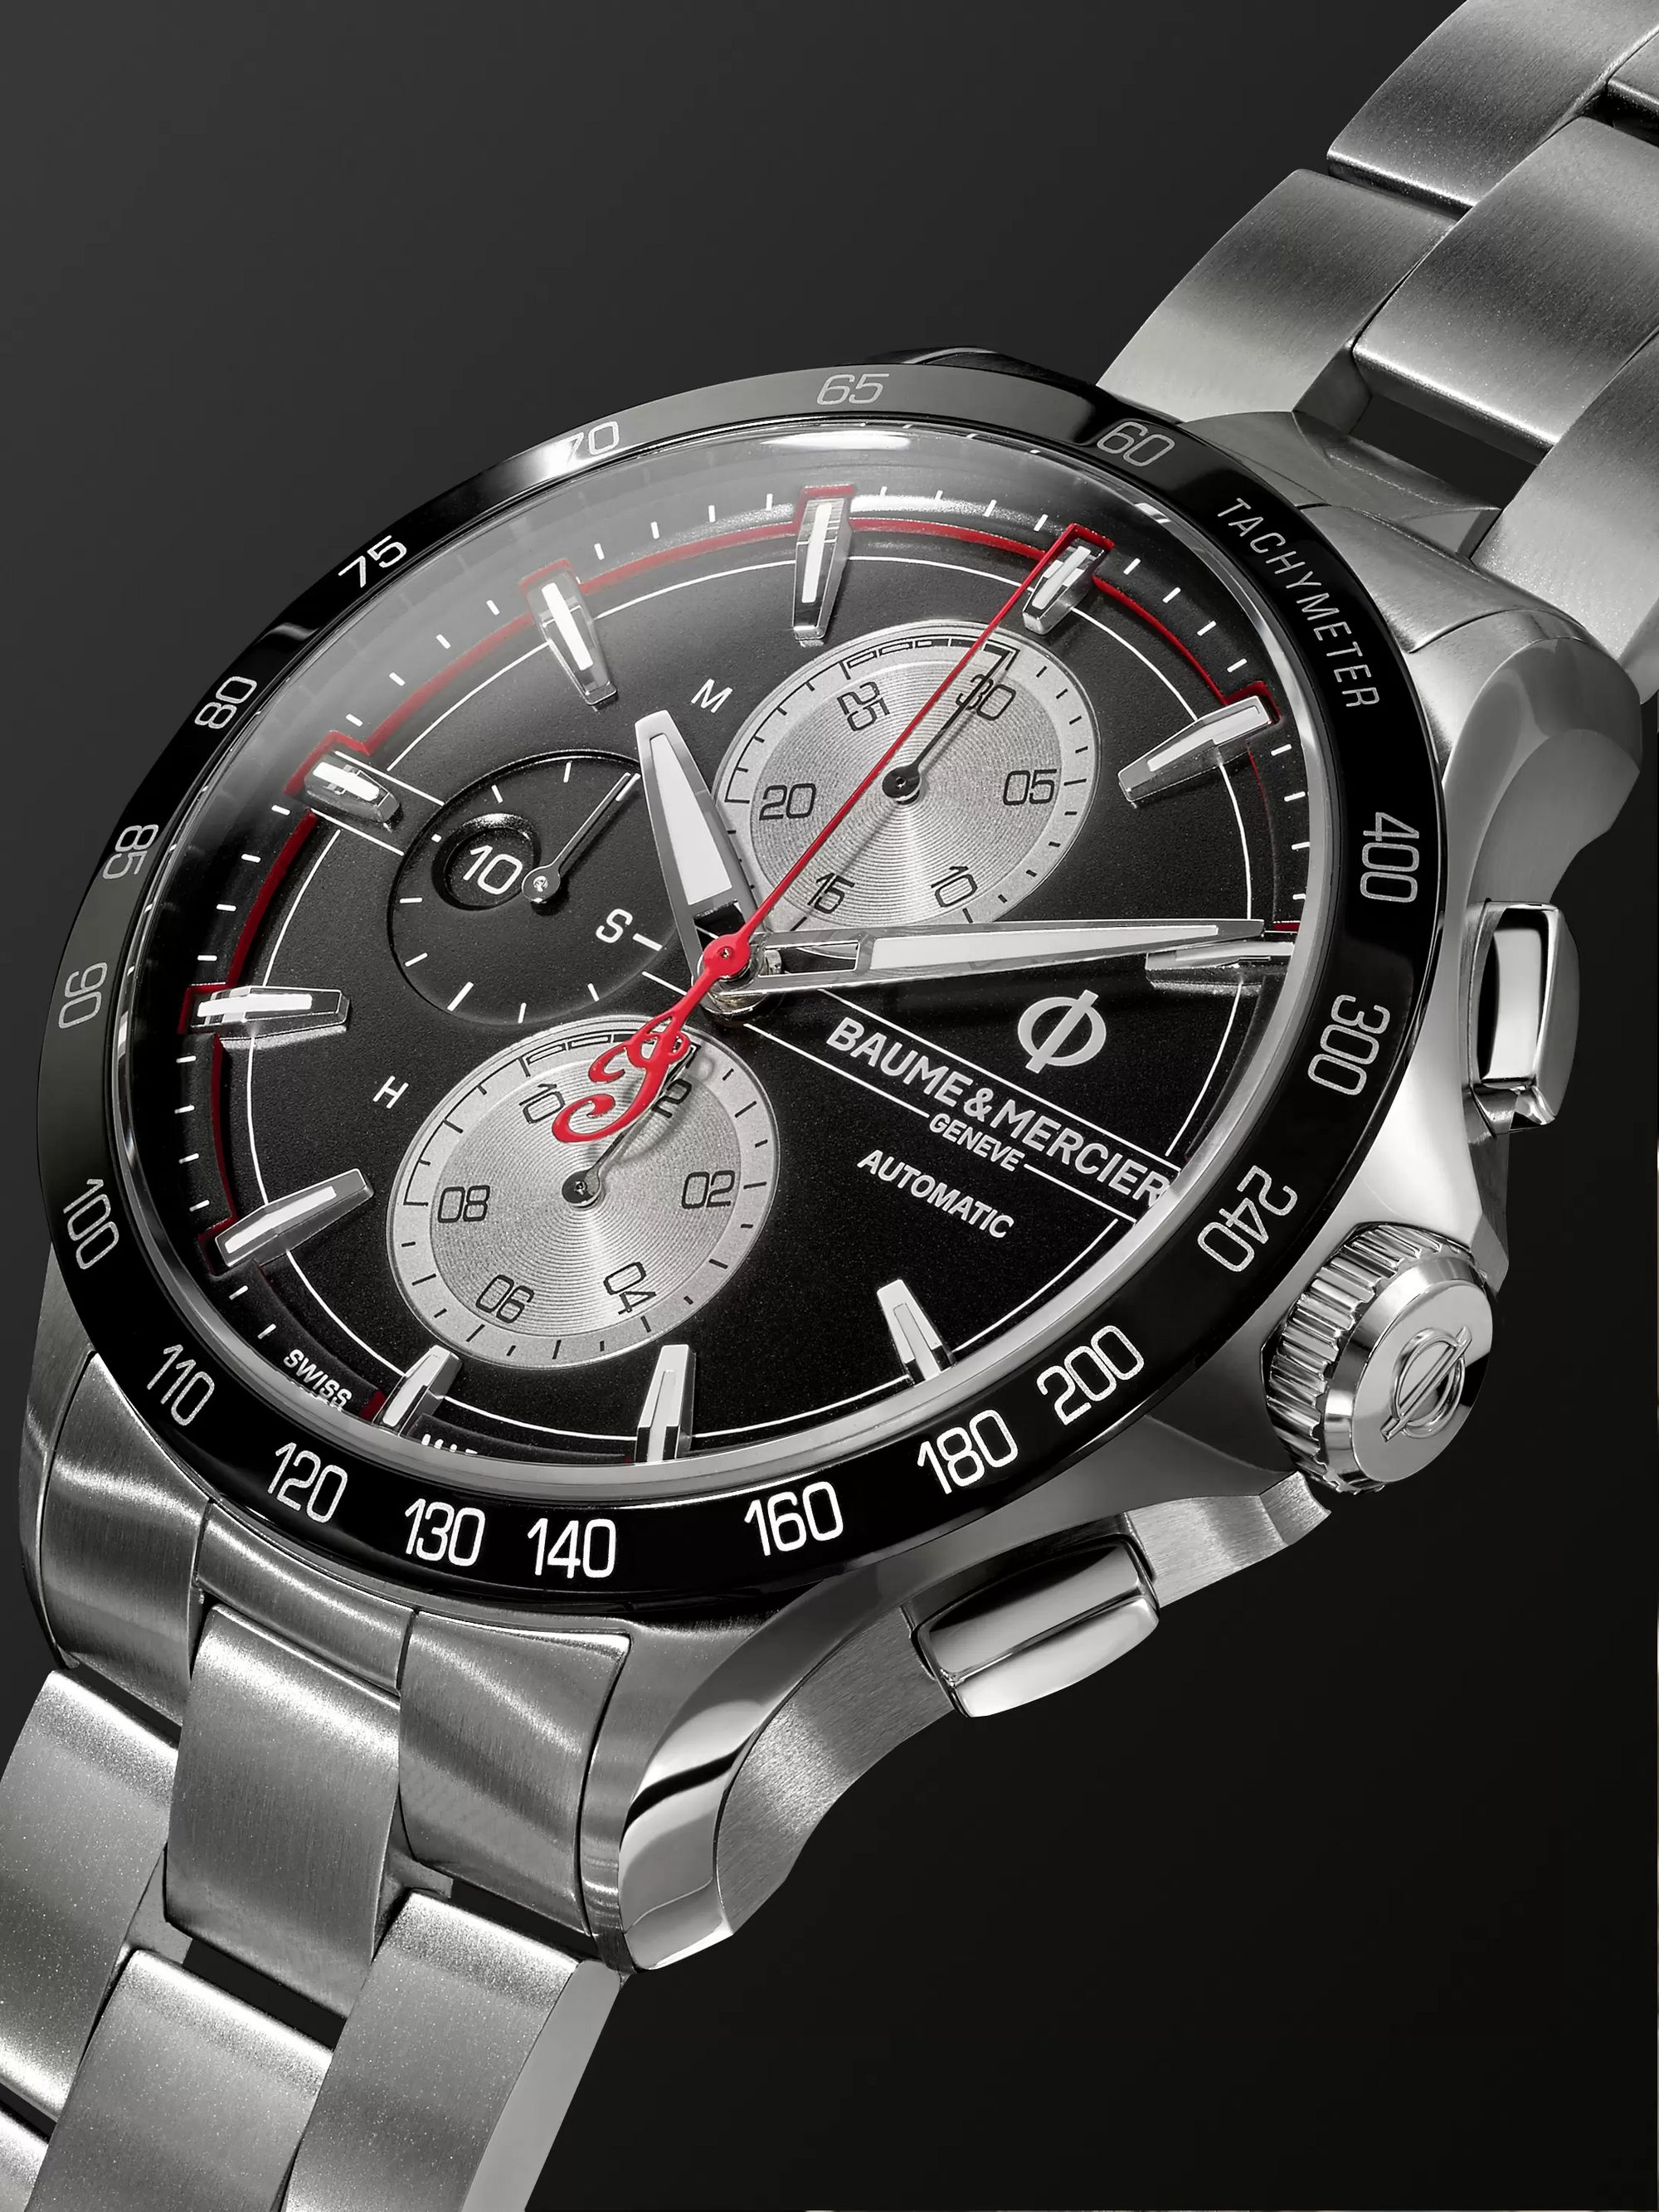 Baume & Mercier Clifton Club Indian Legend Tribute Chief Chronograph 44mm Stainless Steel Watch, Ref. No. M0A10403